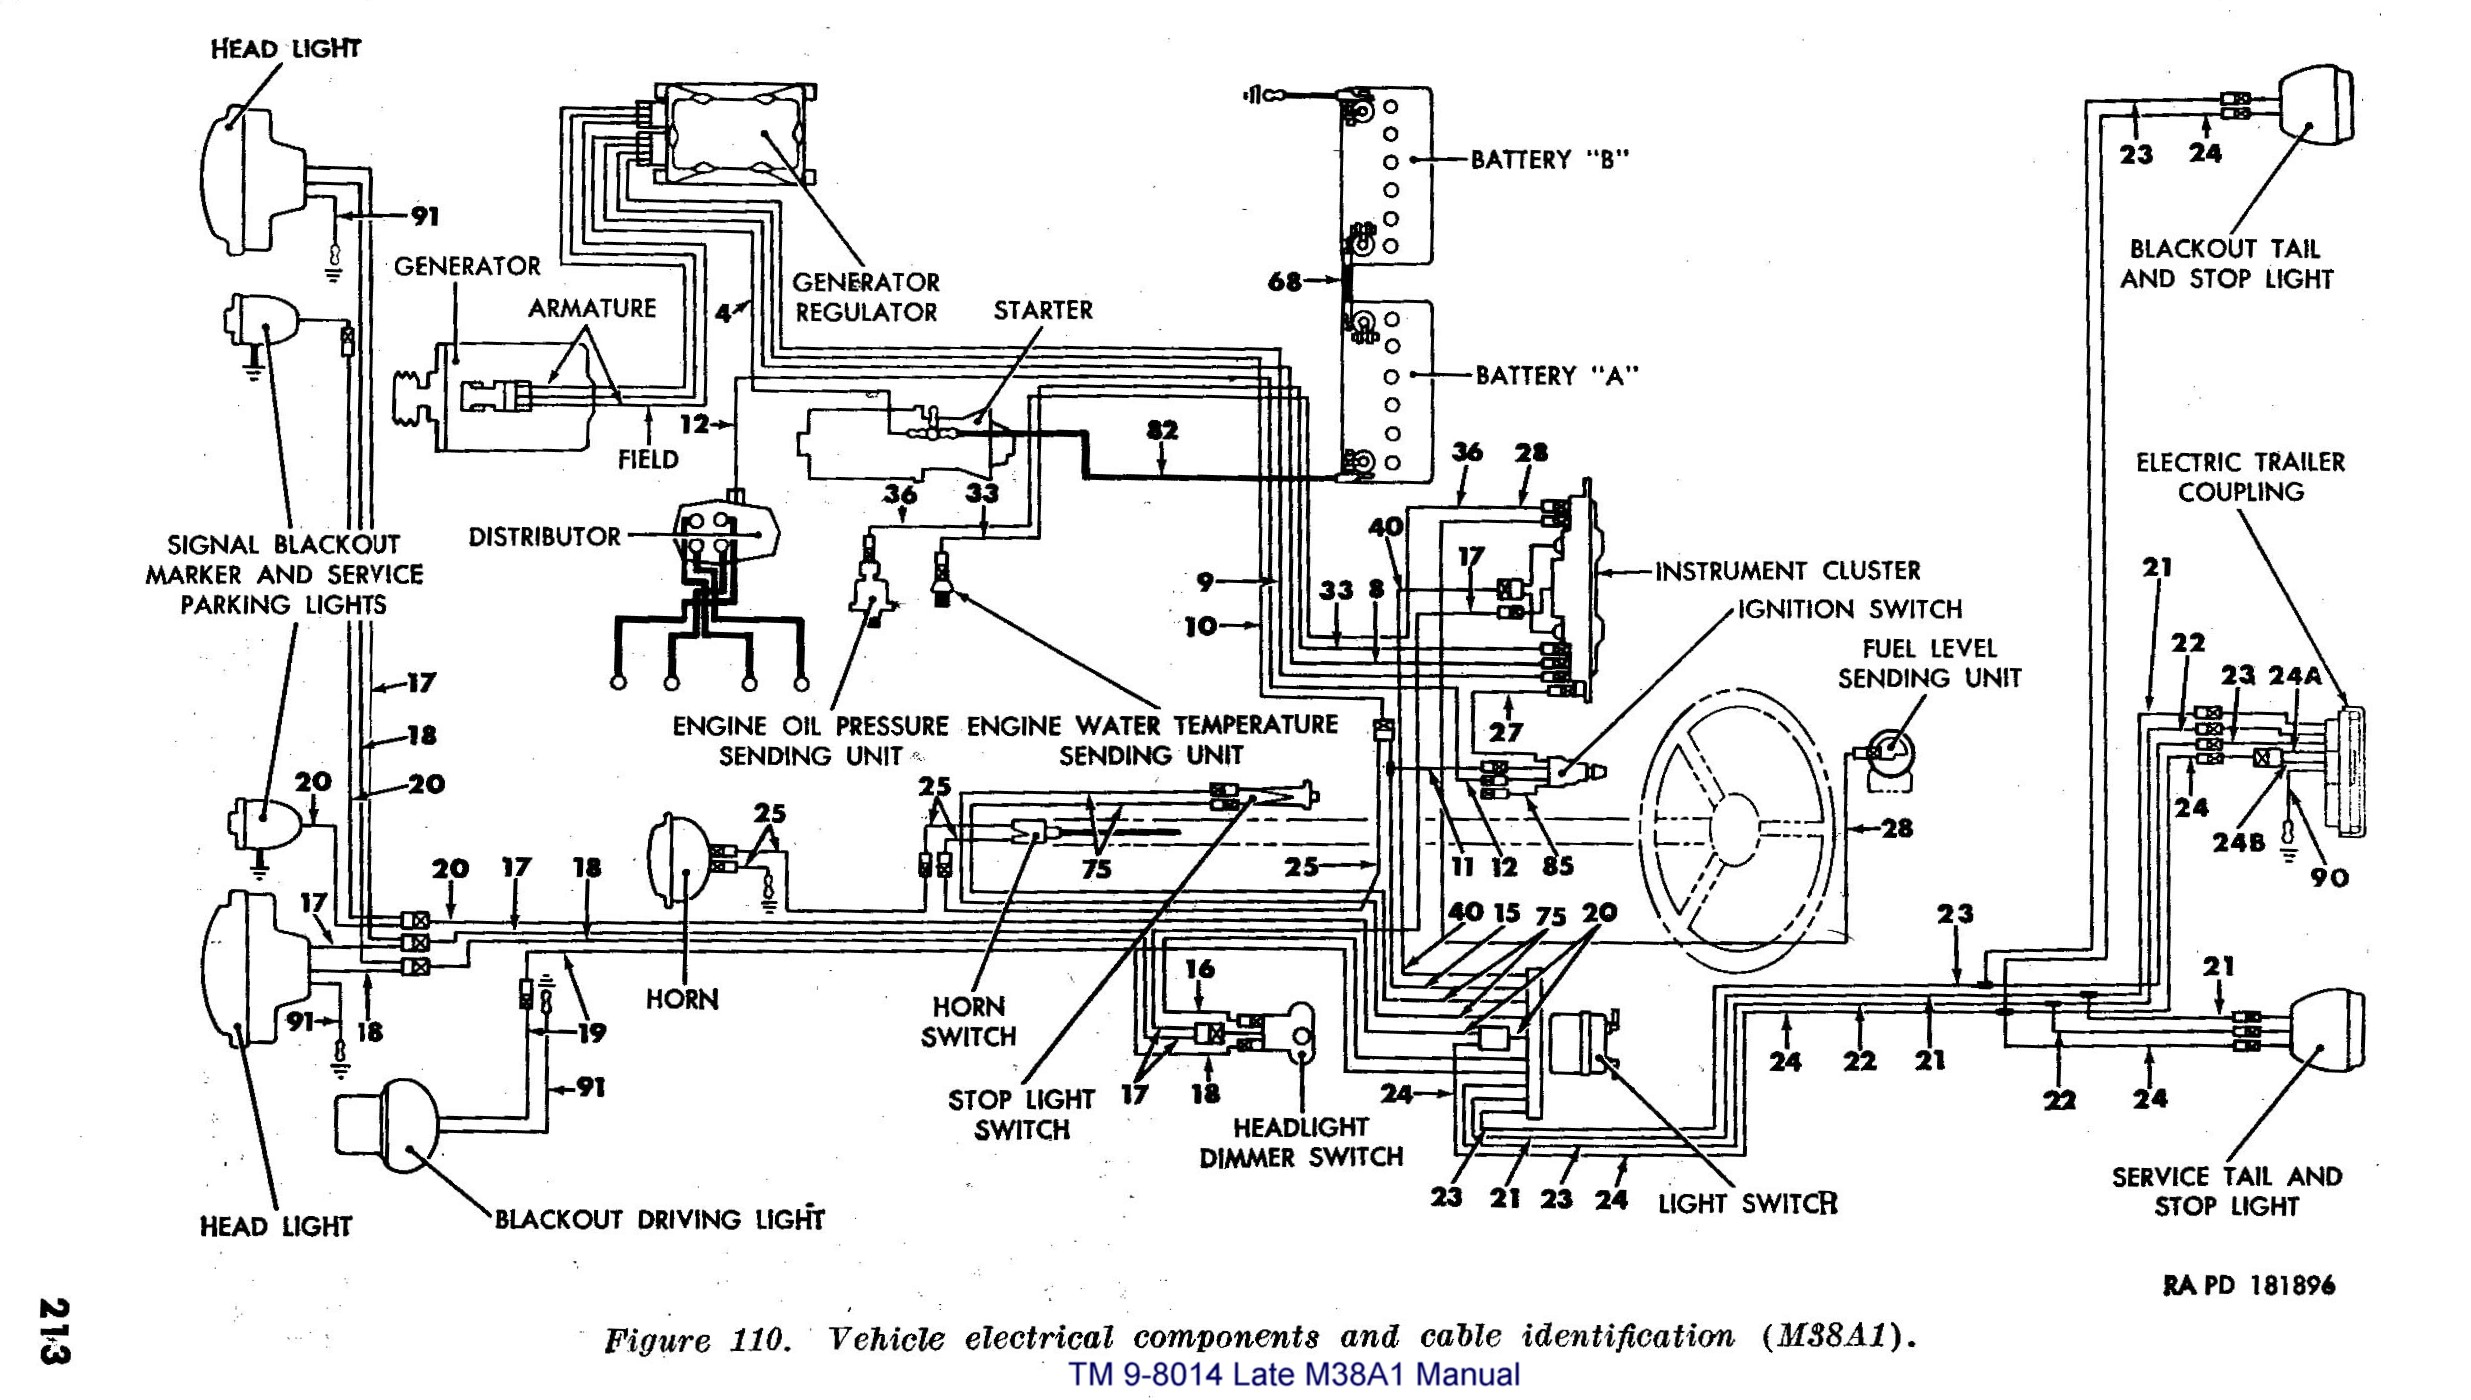 M38a1 Wiring Diagram Getting Ready With Jeep Free Picture Schematic Willysmjeeps M170 Electrical Tm 9 8014 Fig 1953